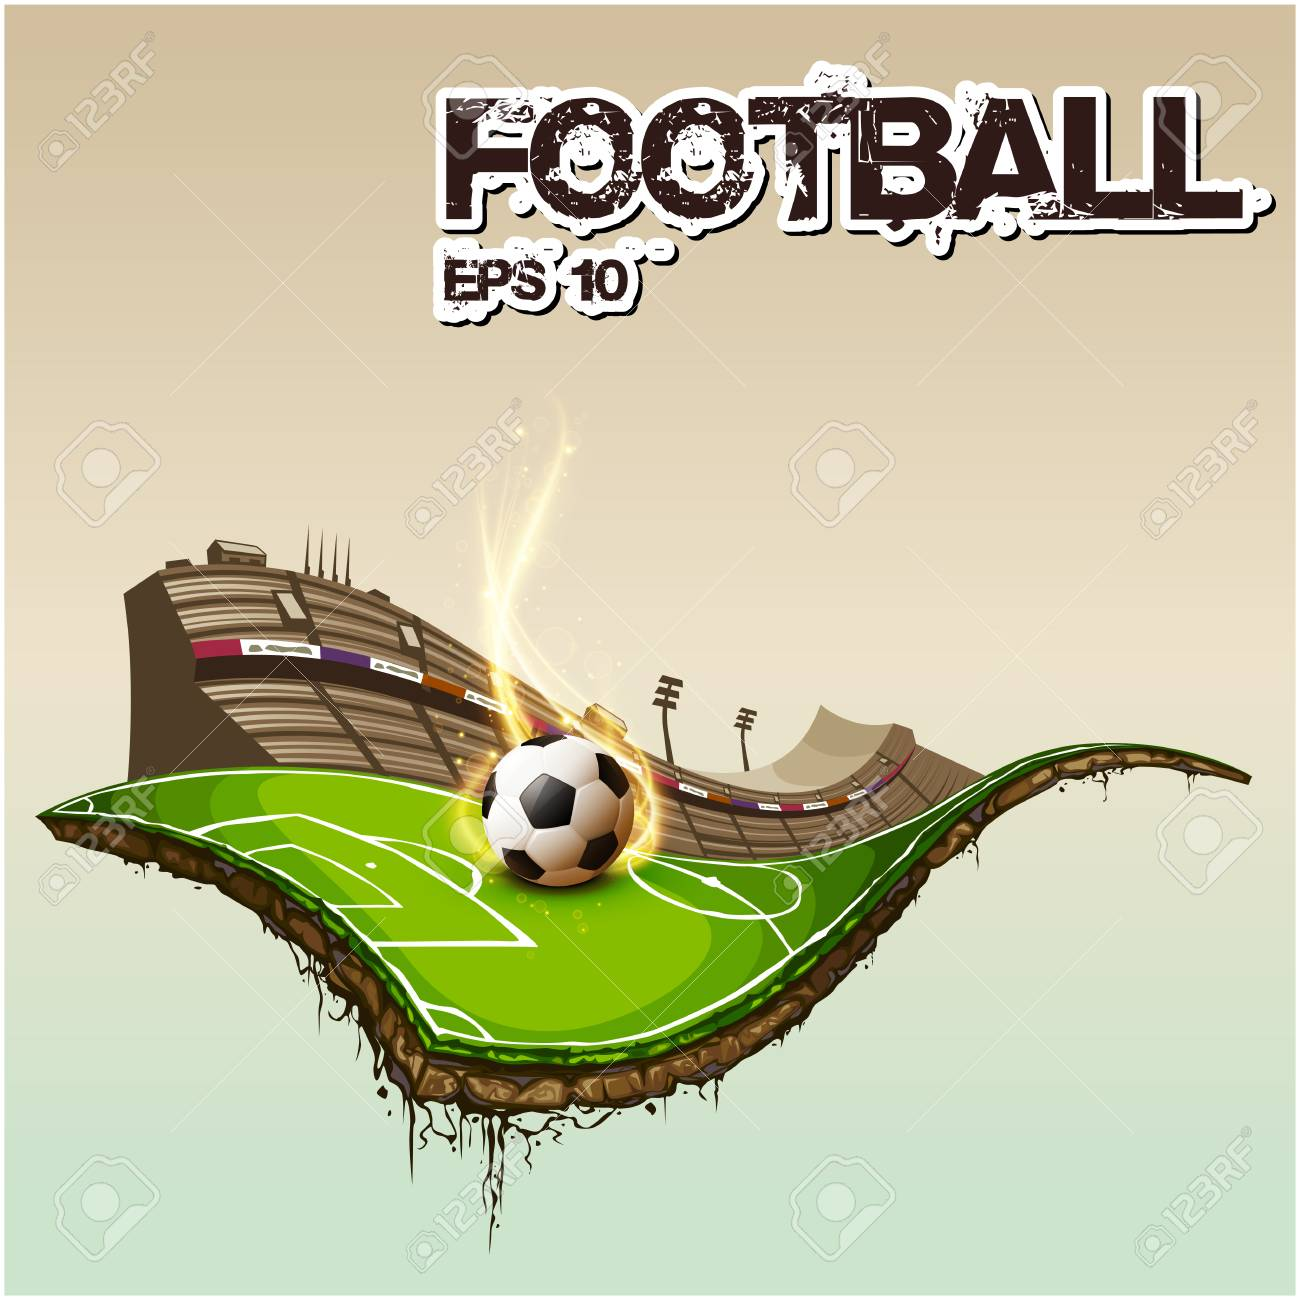 football text in football stadium background vector image royalty free cliparts vectors and stock illustration image 97700826 football text in football stadium background vector image